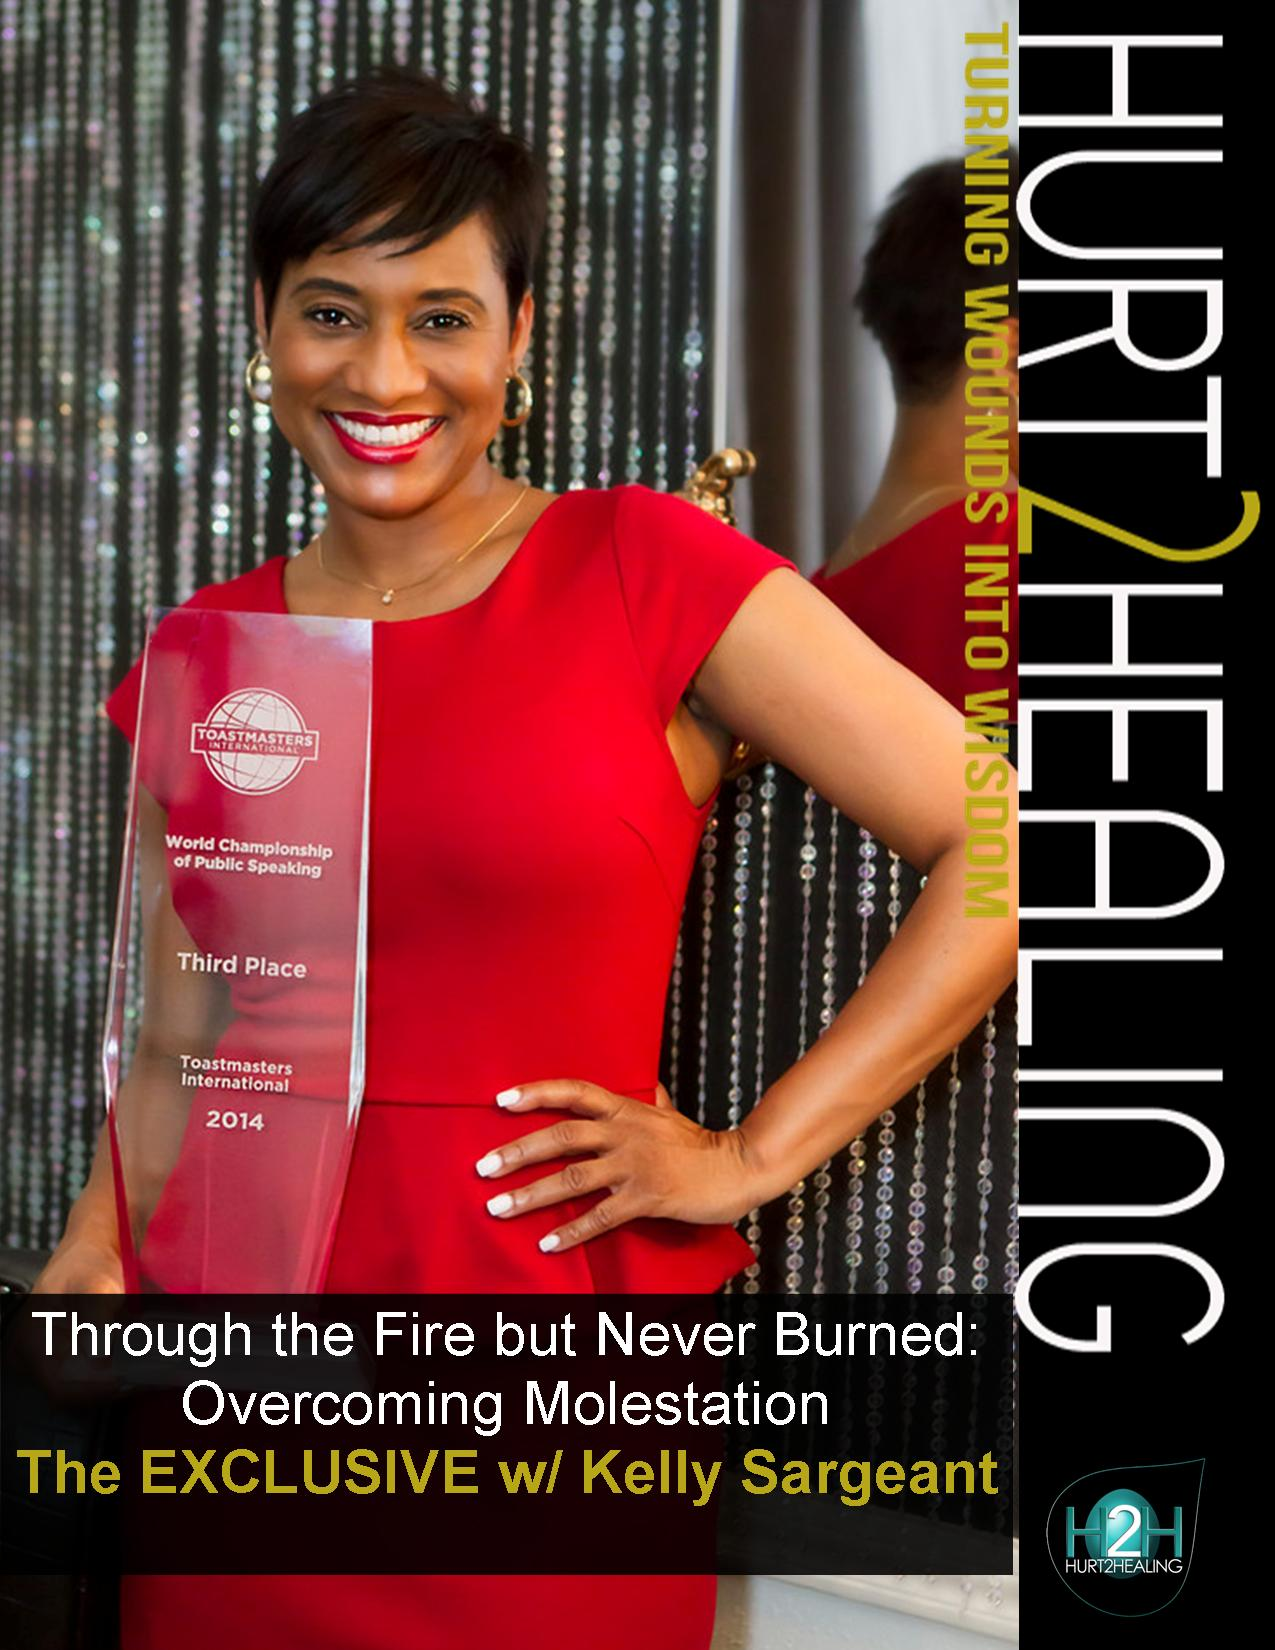 [New Cover] Through the Fire, but Never Burned: Overcoming Molestation, the Exclusive w/ Kelly Sargeant